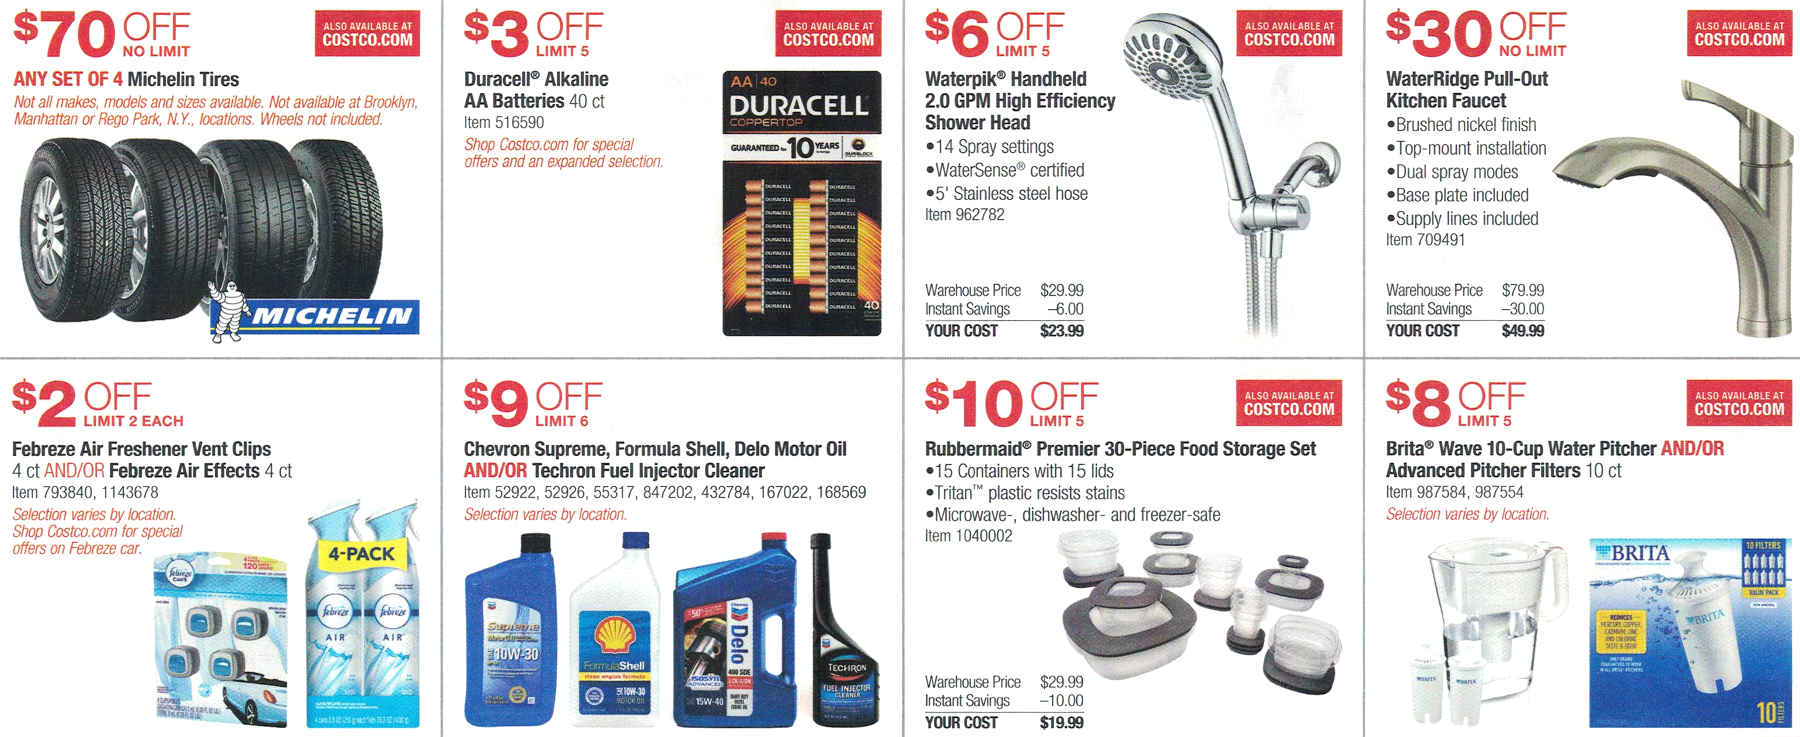 Costco May 2017 Coupon Book Page 6